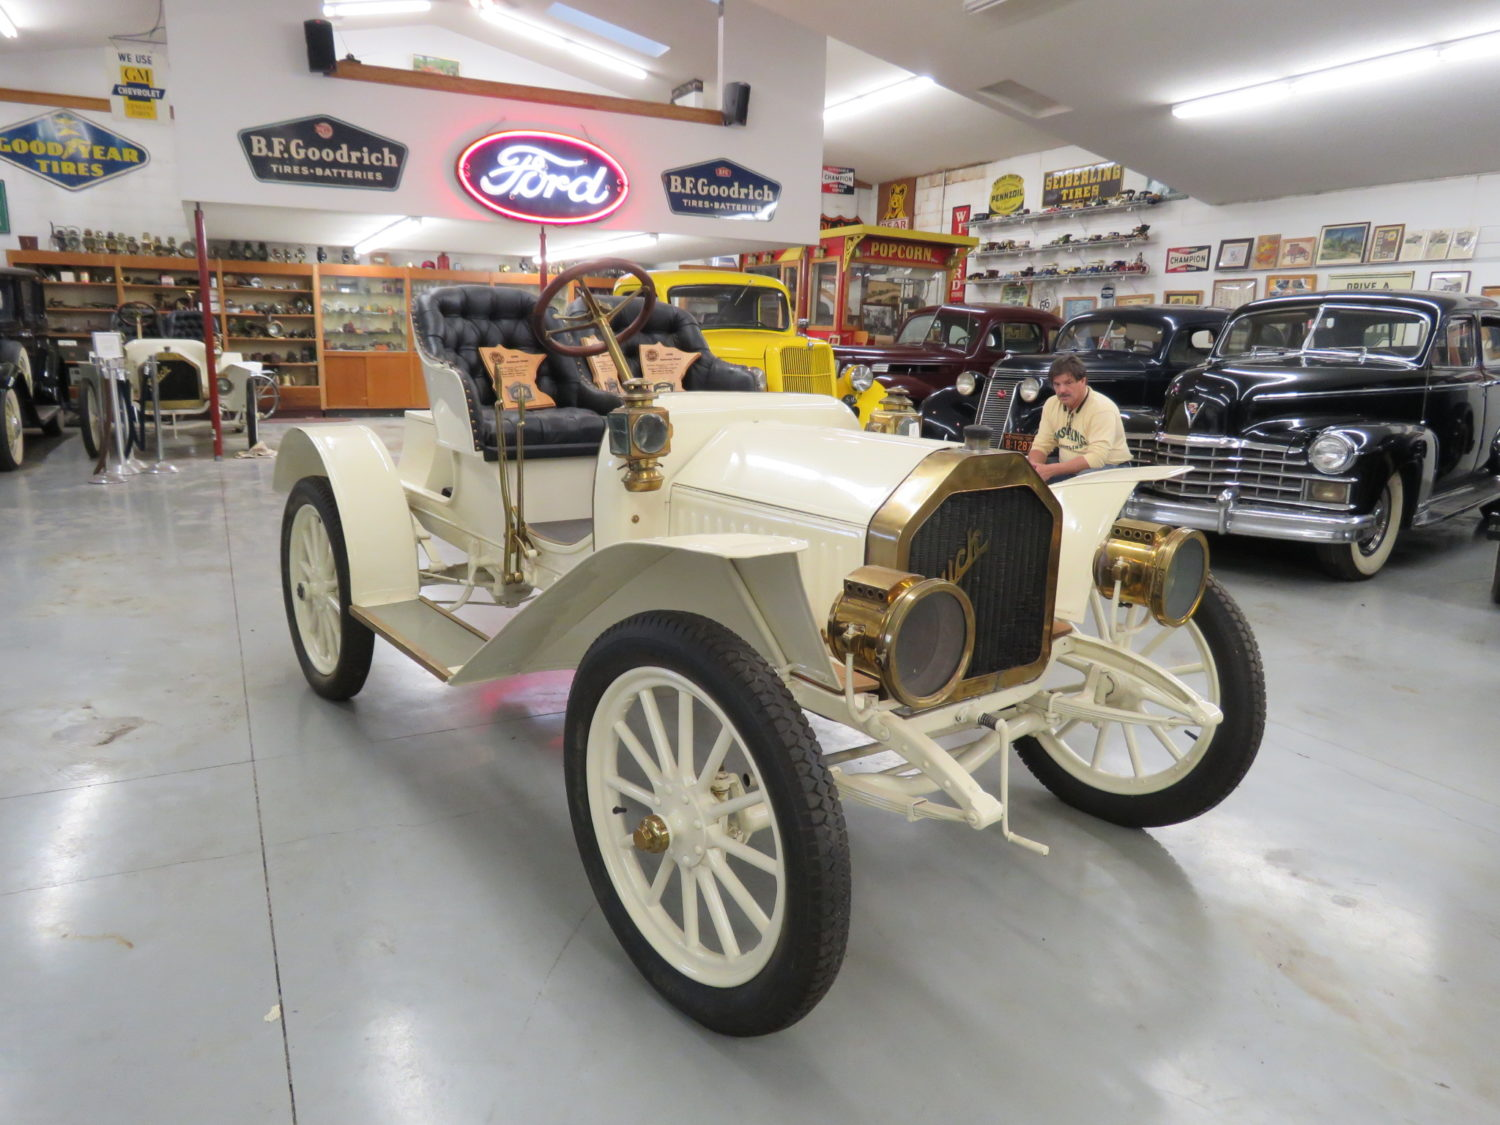 Fabulous Collector Cars, Parts, Memorabilia & More.. The Pellow Collection - image 5